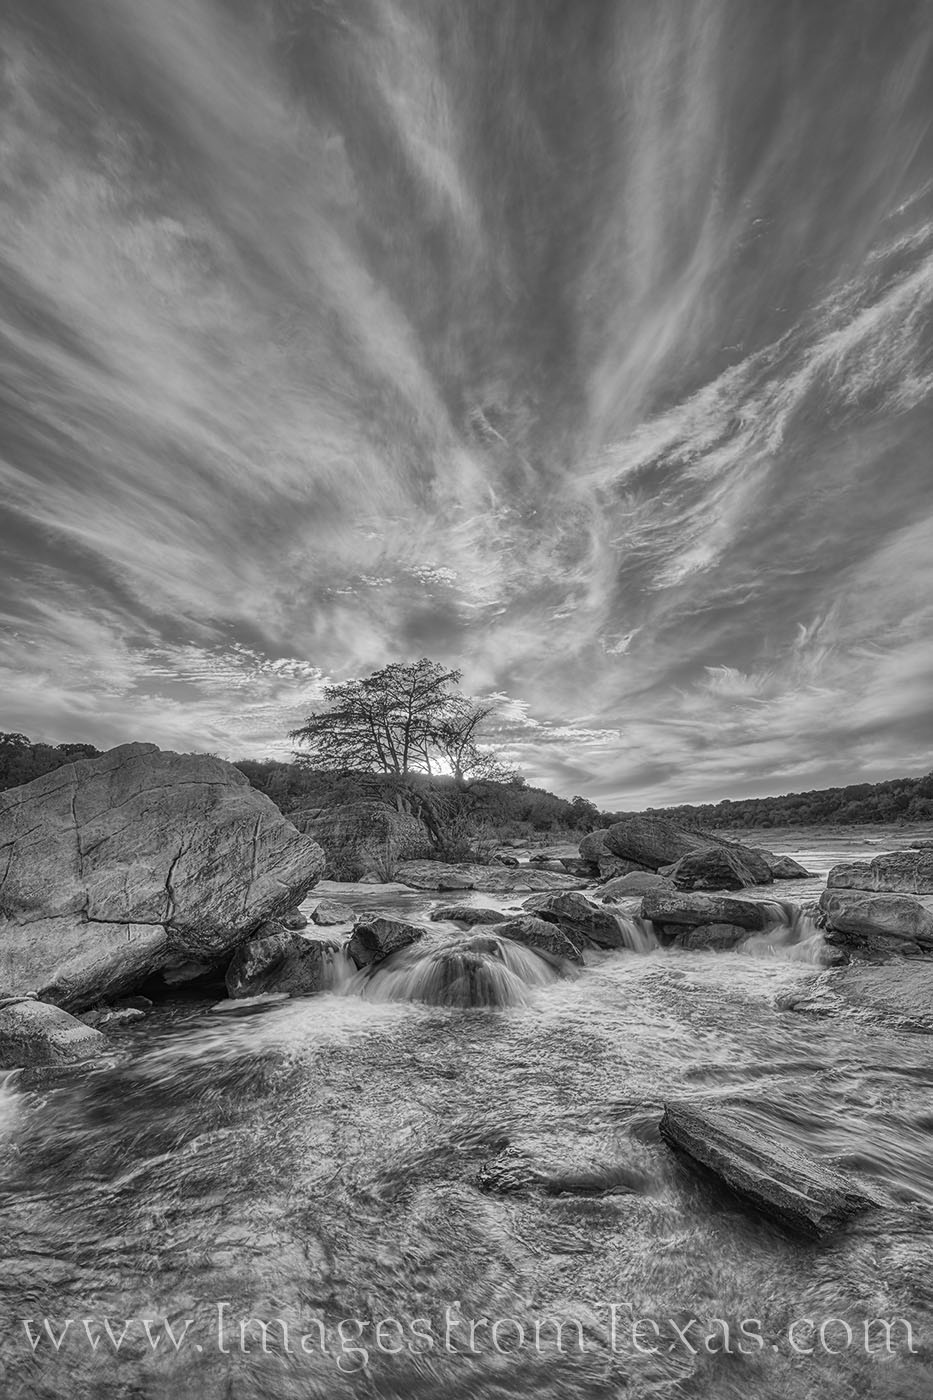 black and white, pedernales river, texas hill country, pedernales falls state park, sunset, water, rapids, waterfall, photo